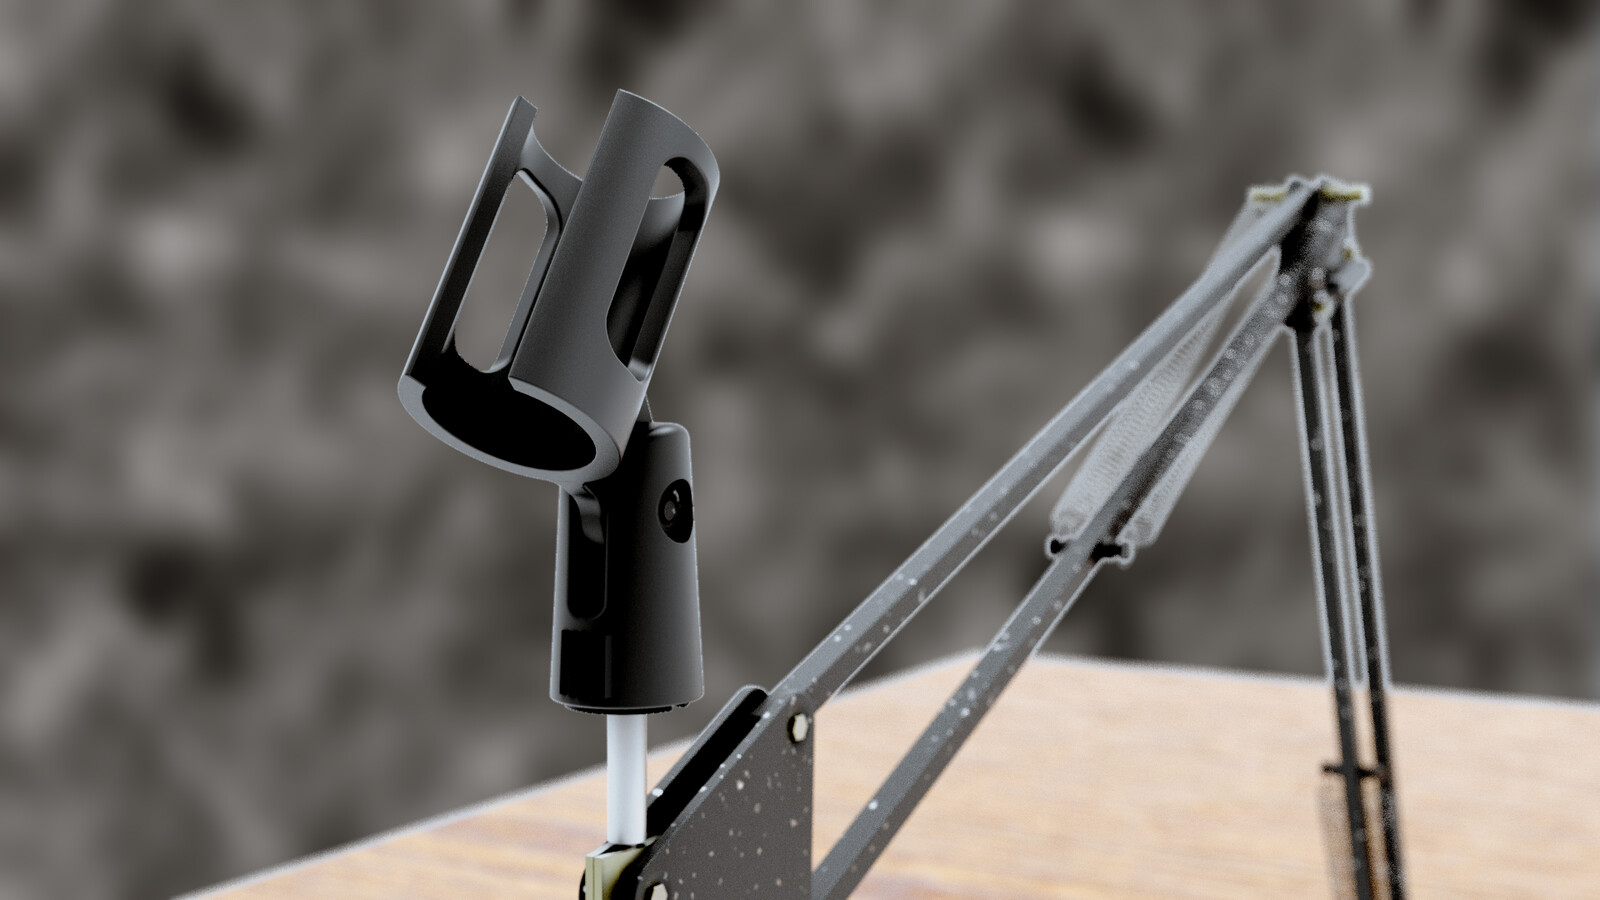 Table Top Clamping Microphone Stand/Arm